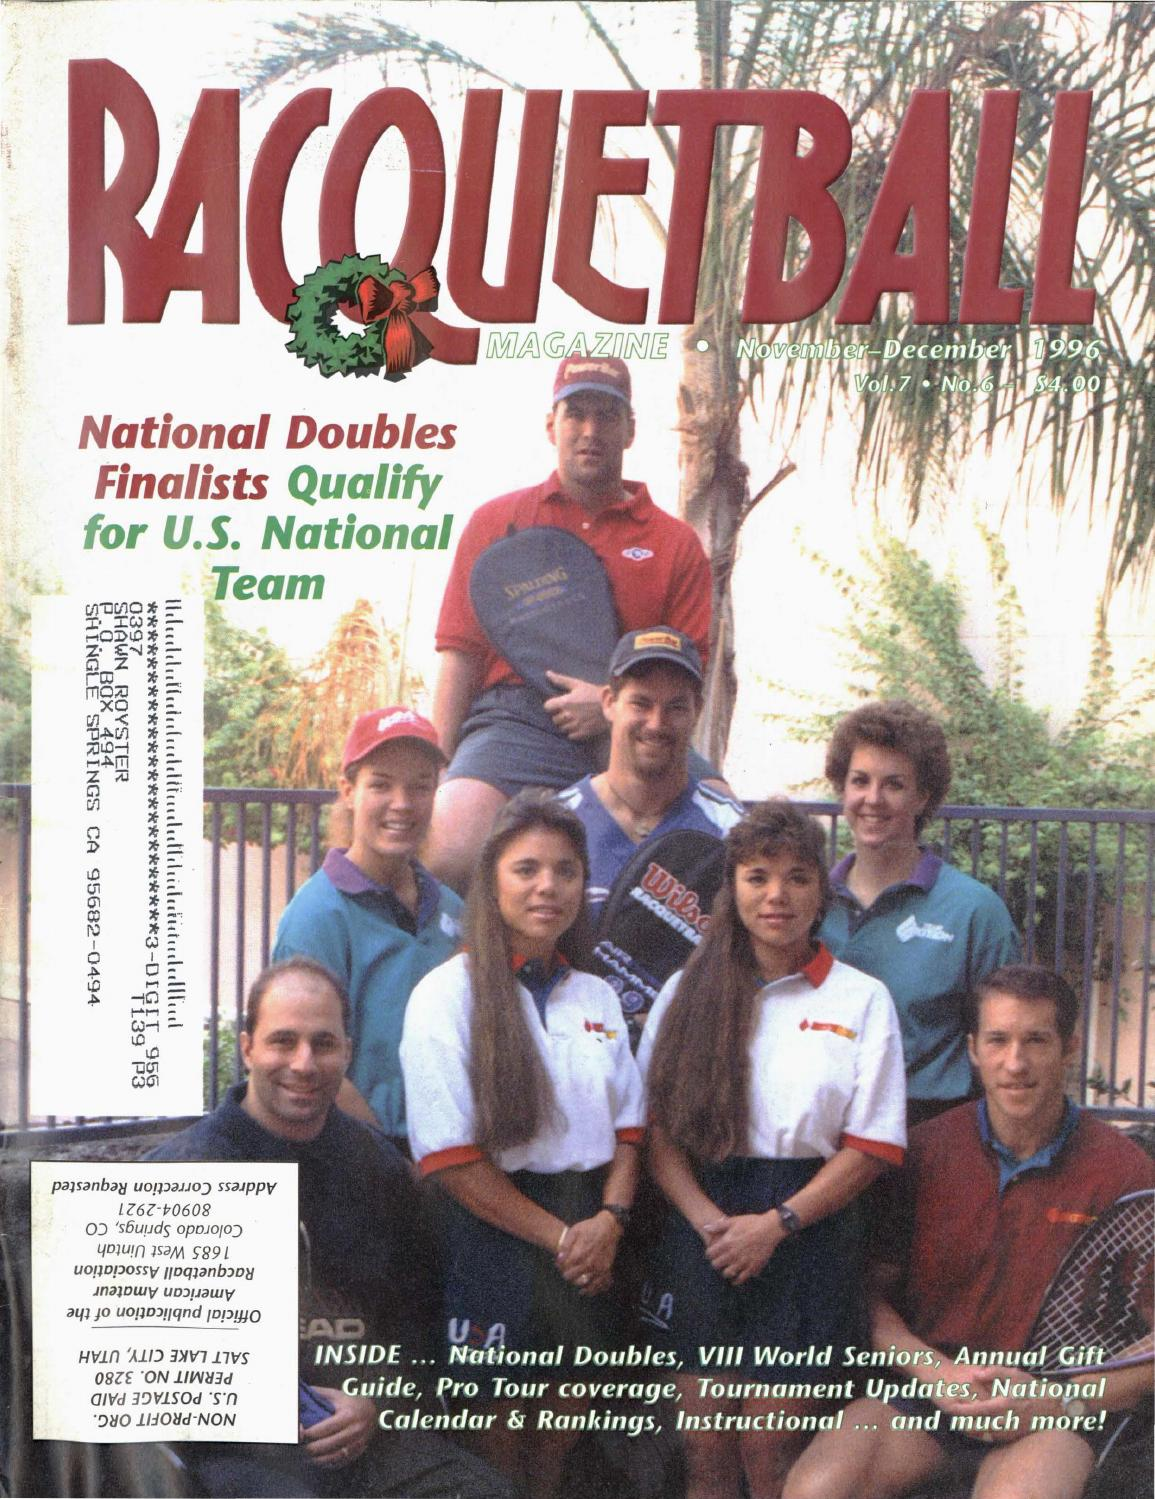 296862bed8e Racquetball Magazine - March April 2000 by Jimmy Oliver - issuu